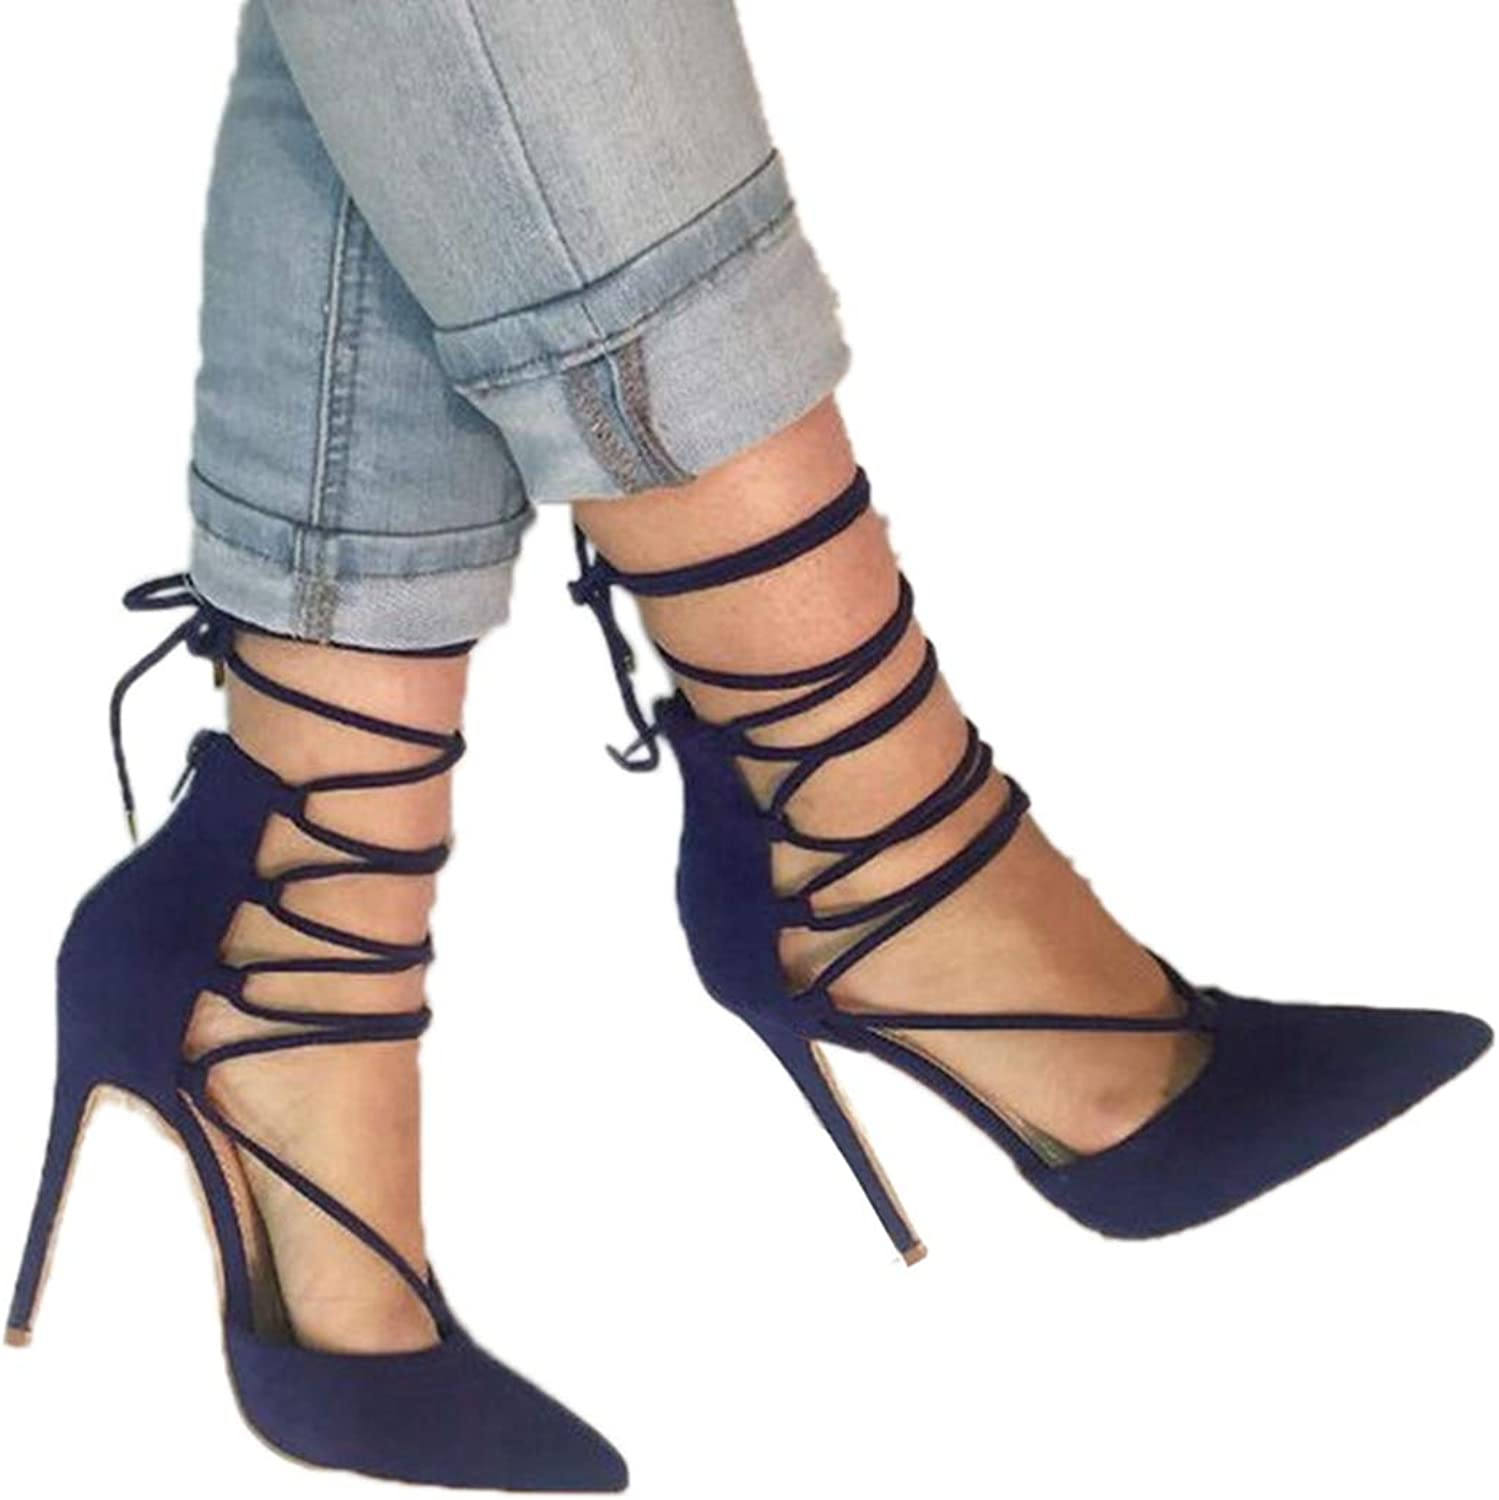 Summer Sandals for Women High Heels Dark bluee Lace up Pointed Toe Ladies Heeled Sandal shoes